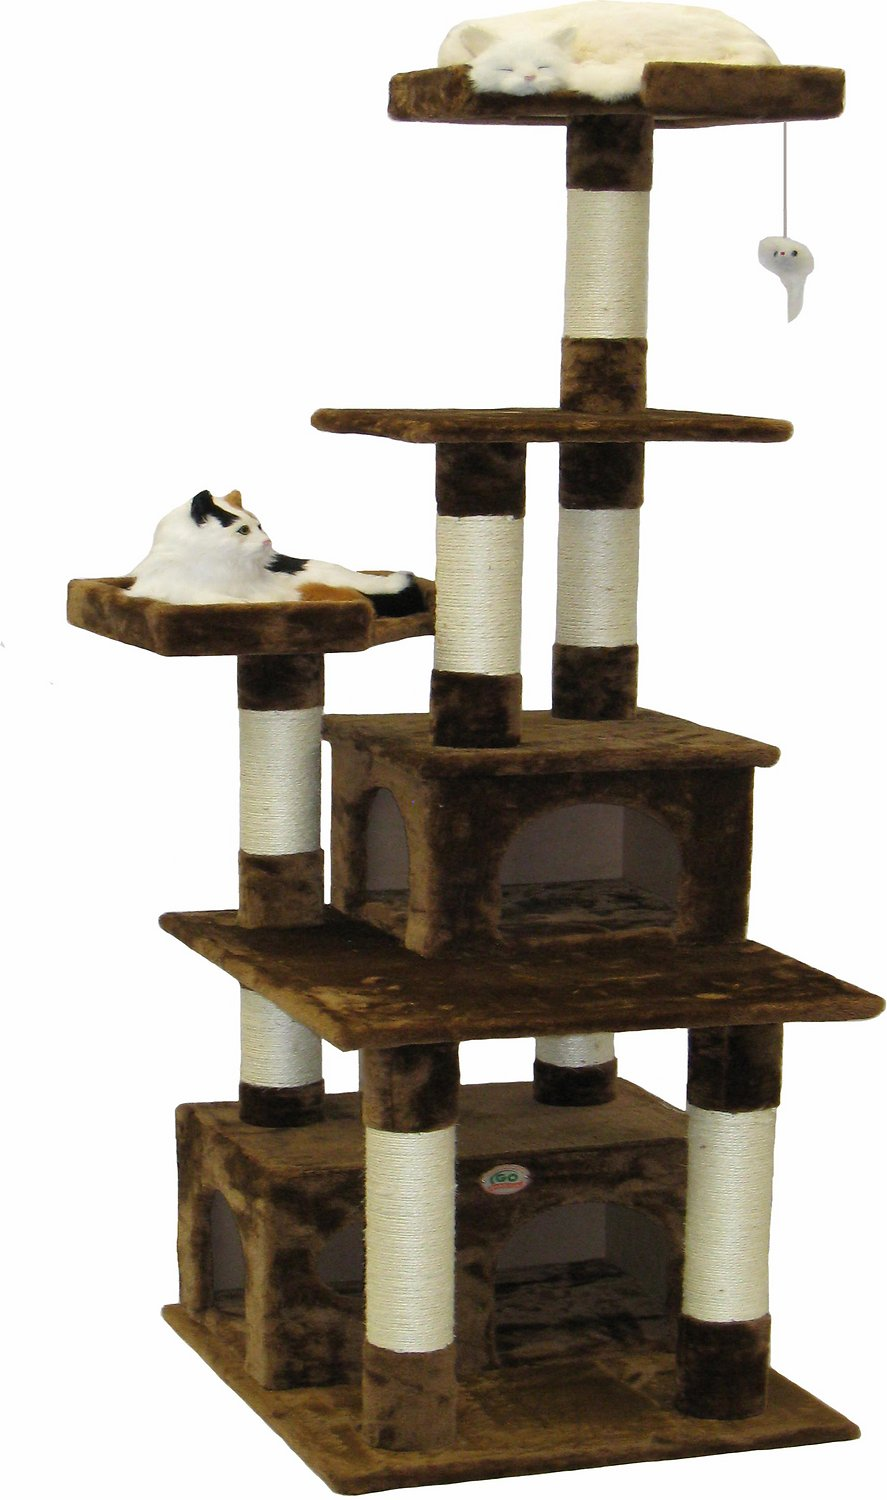 cat tree designs catcase white bookcase with a cat tree shelves  - cat tree designs build